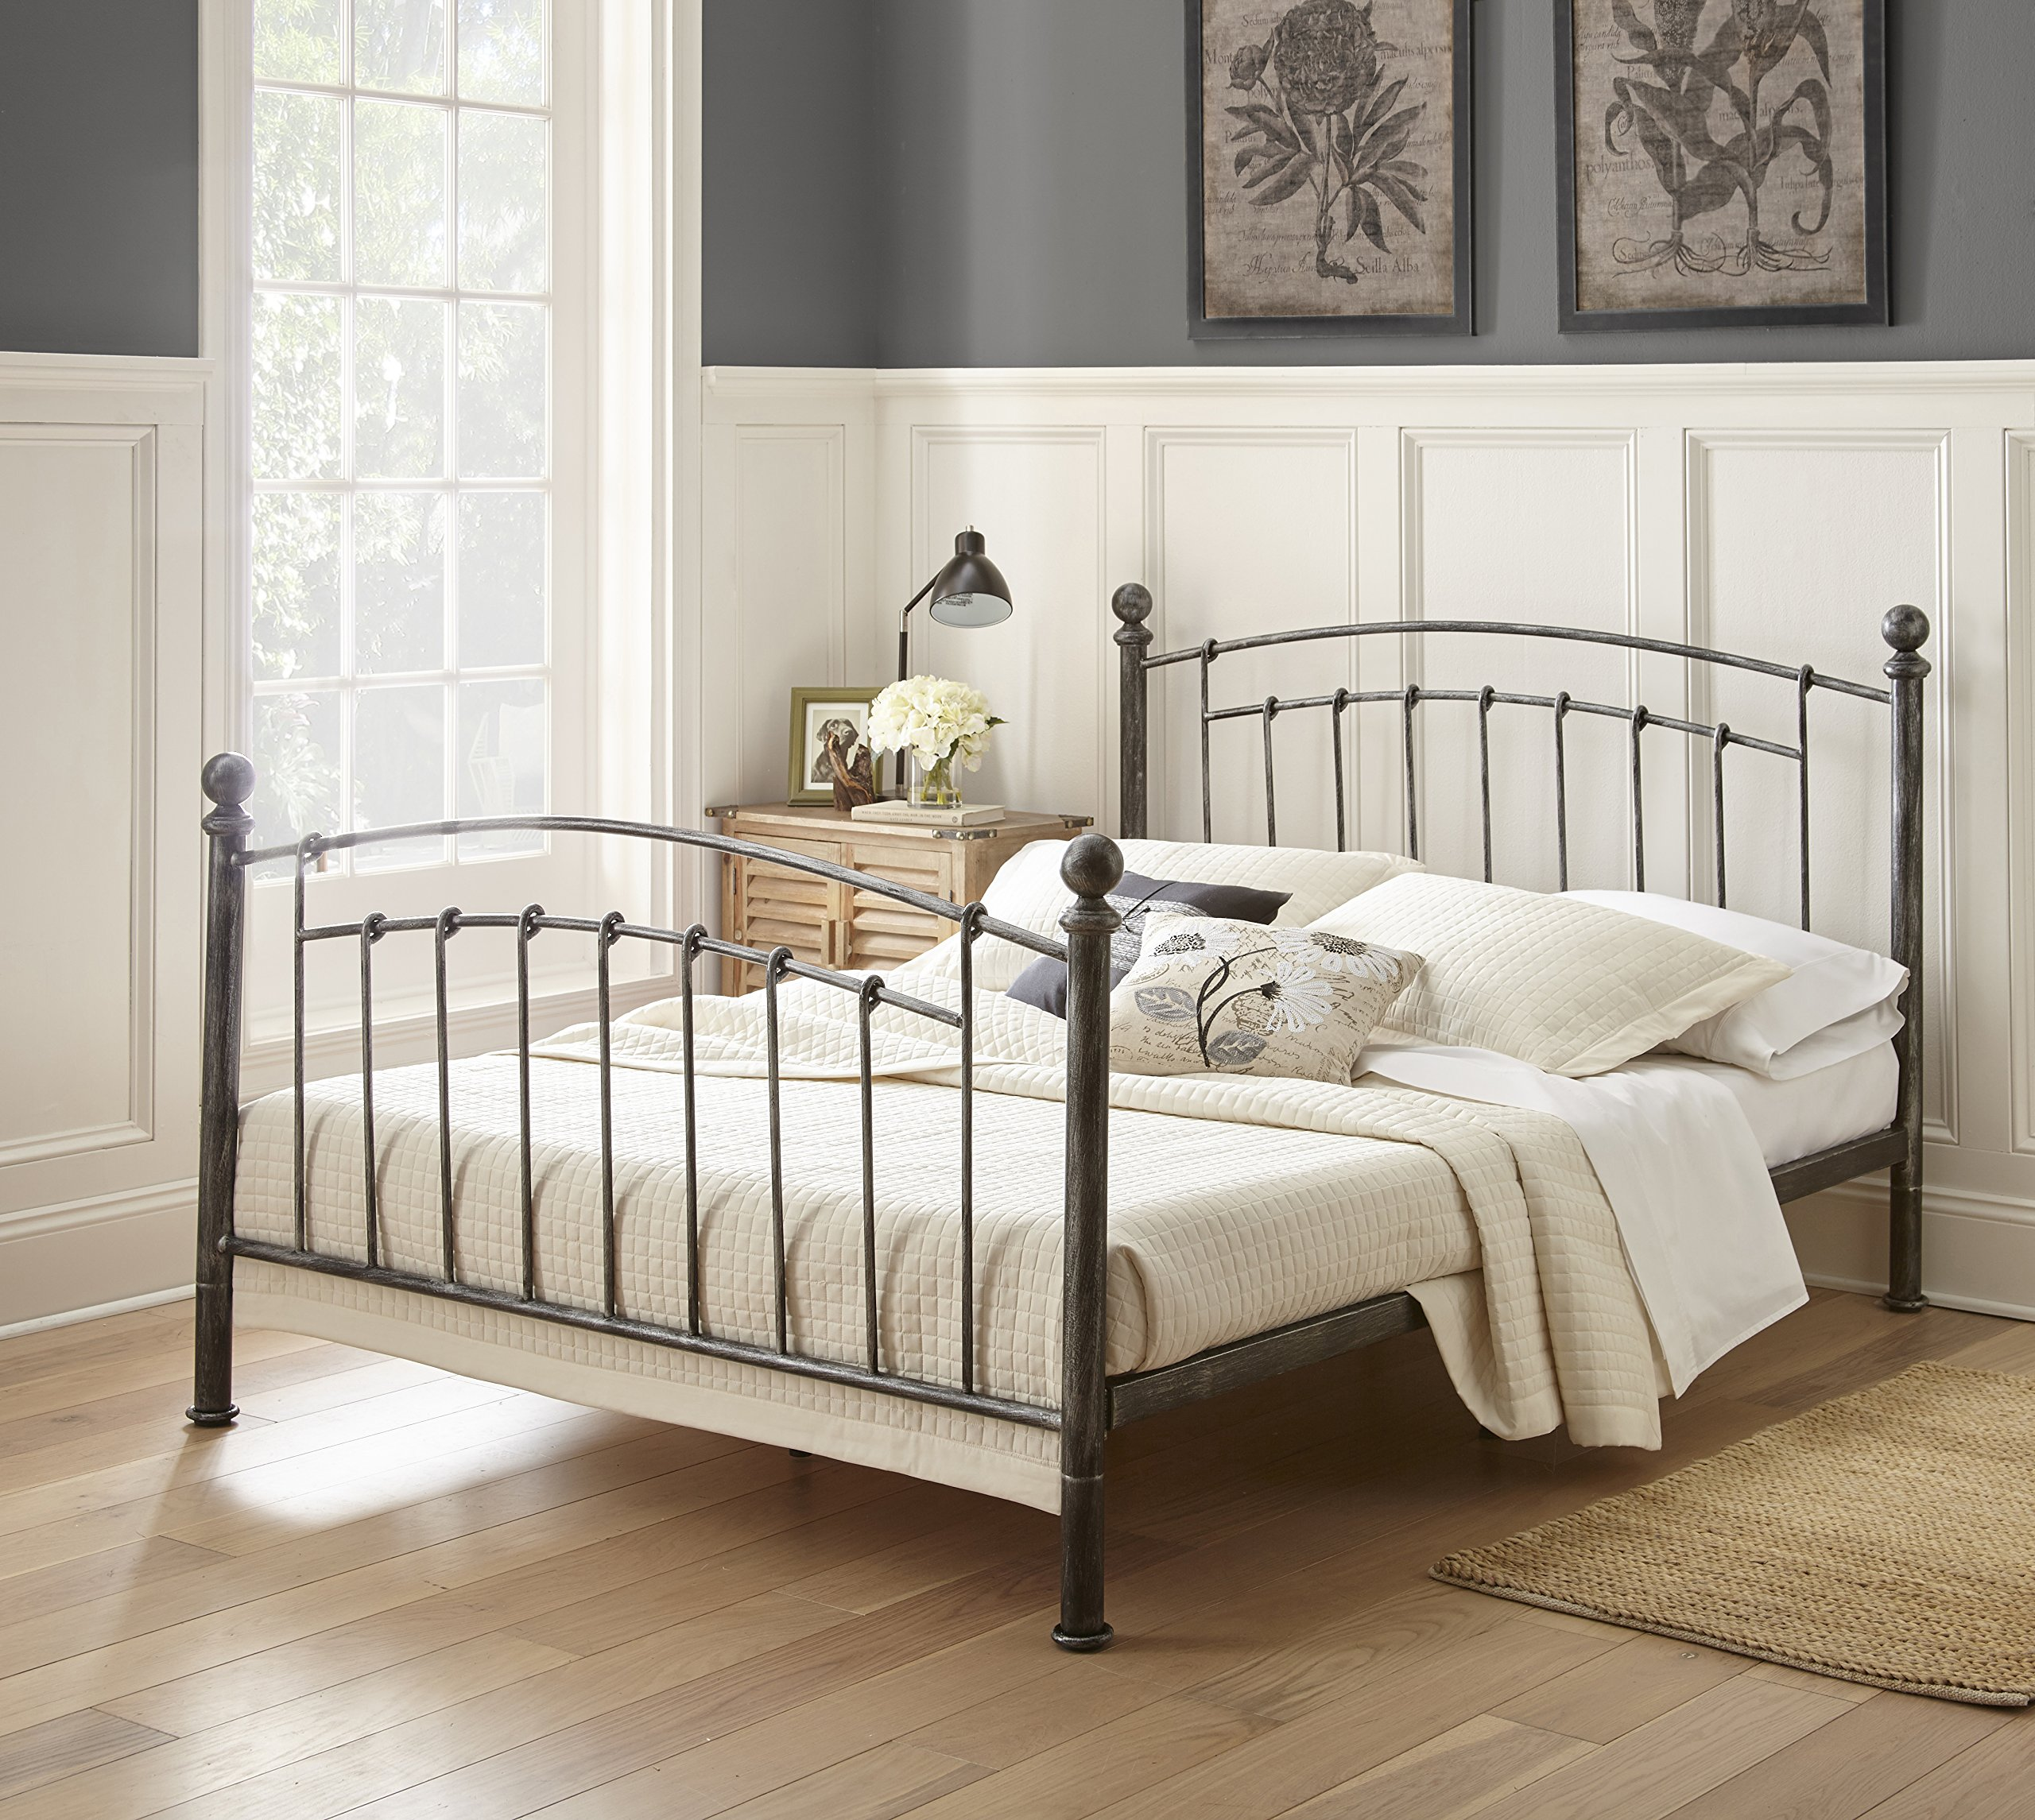 Flex Form Chandler Metal Platform Bed Frame / Mattress Foundation with Headboard and Footboard, Queen by Flex Form (Image #3)